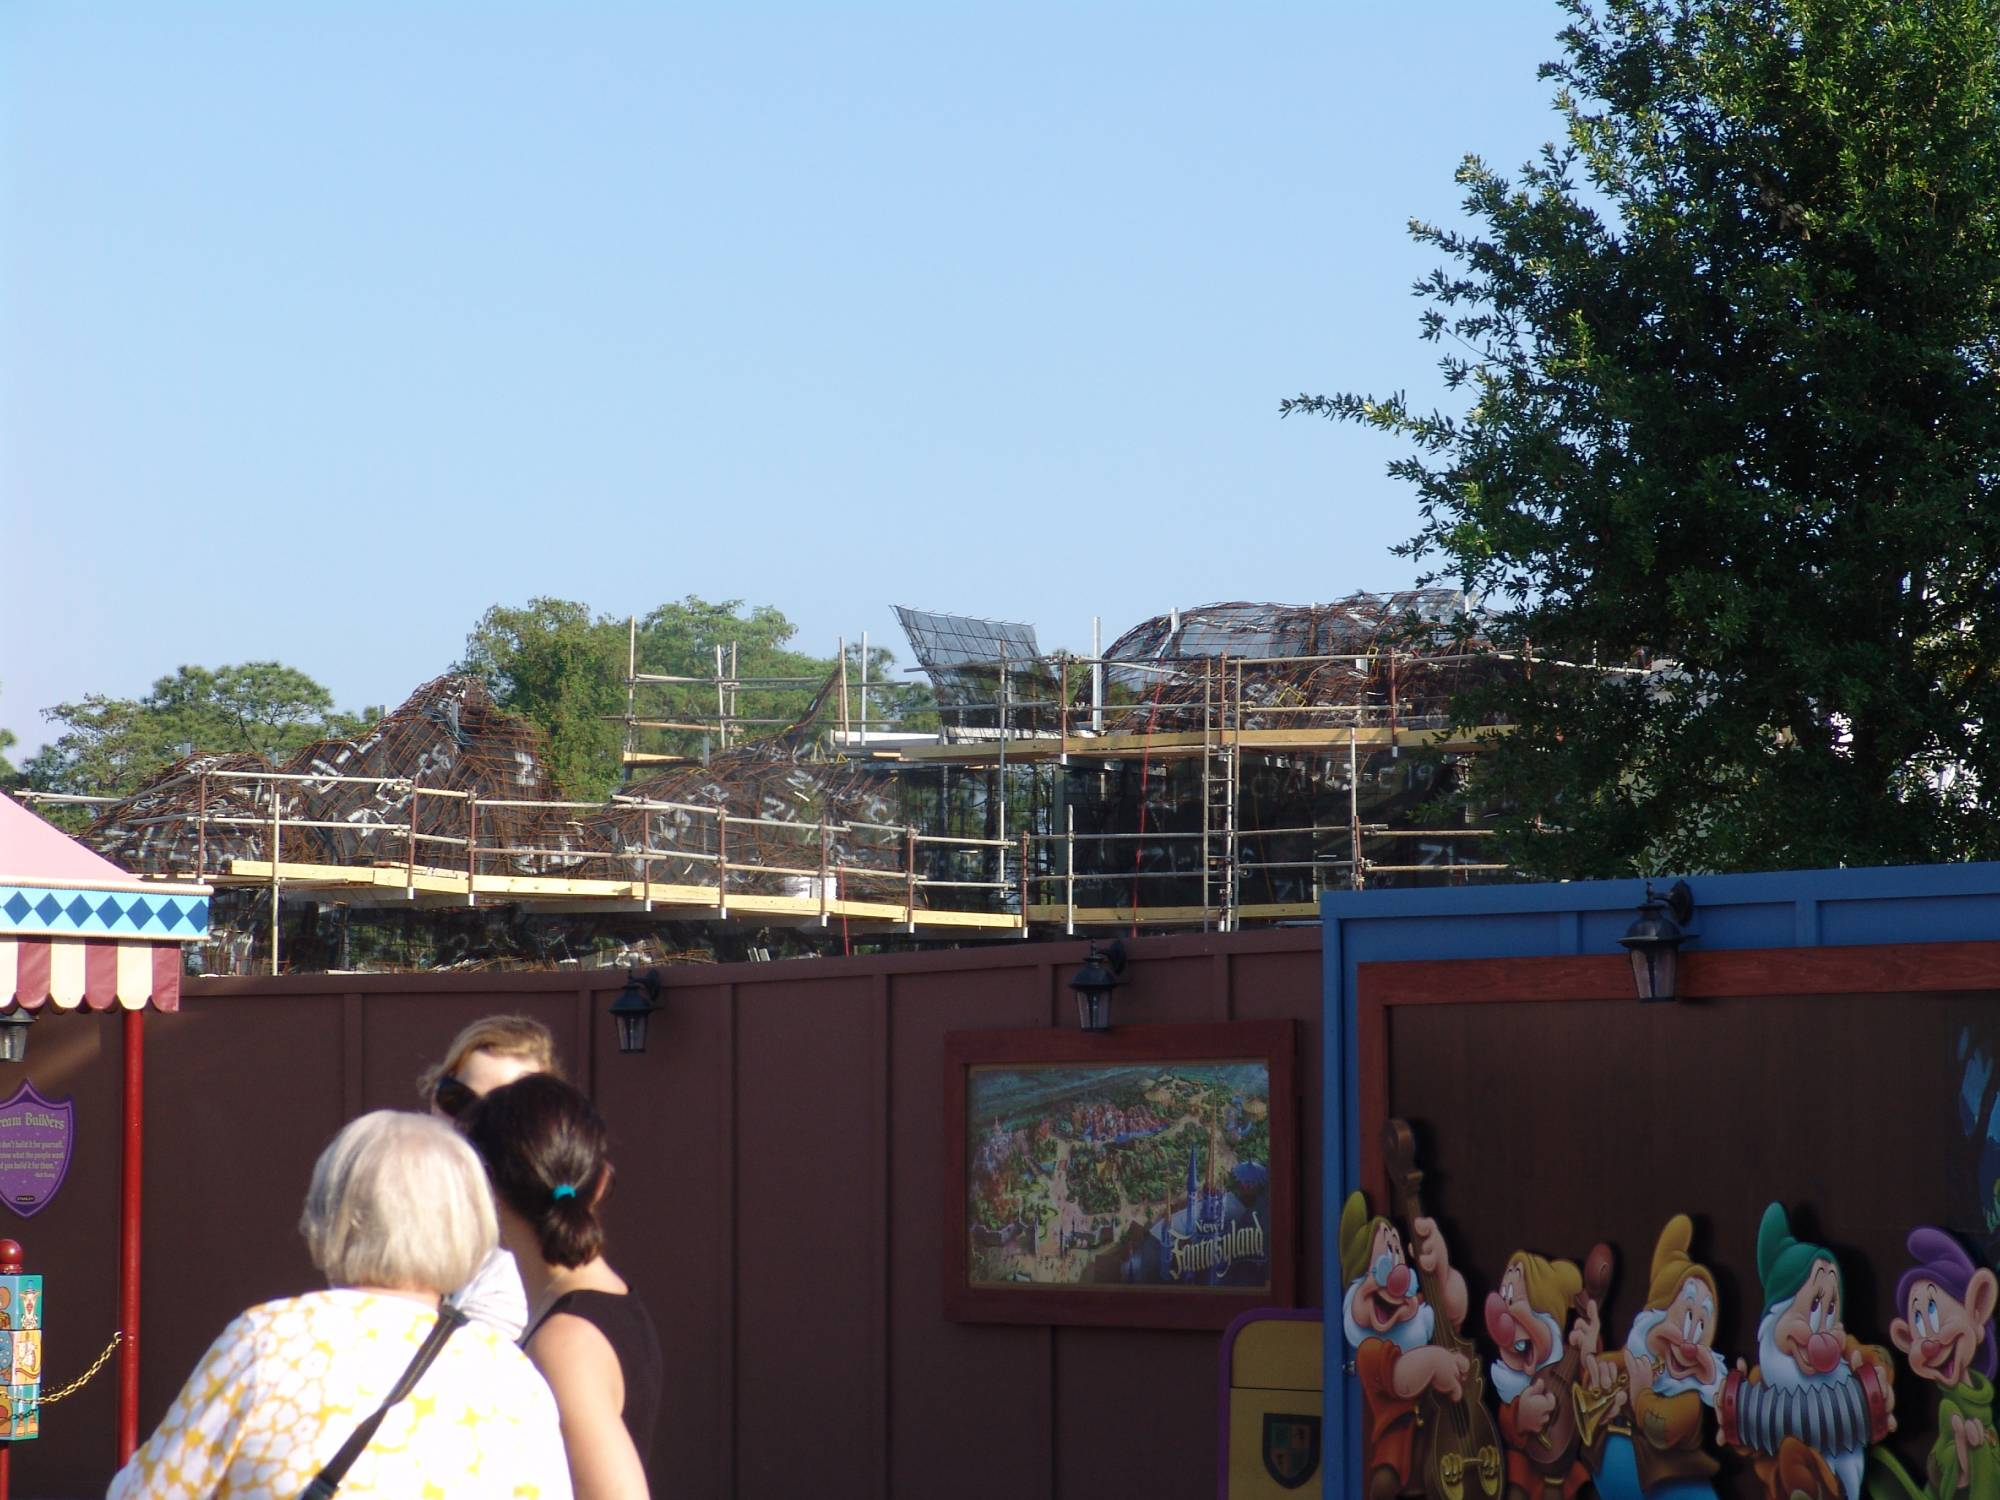 Magic Kingdom - Fantasyland expansion construction